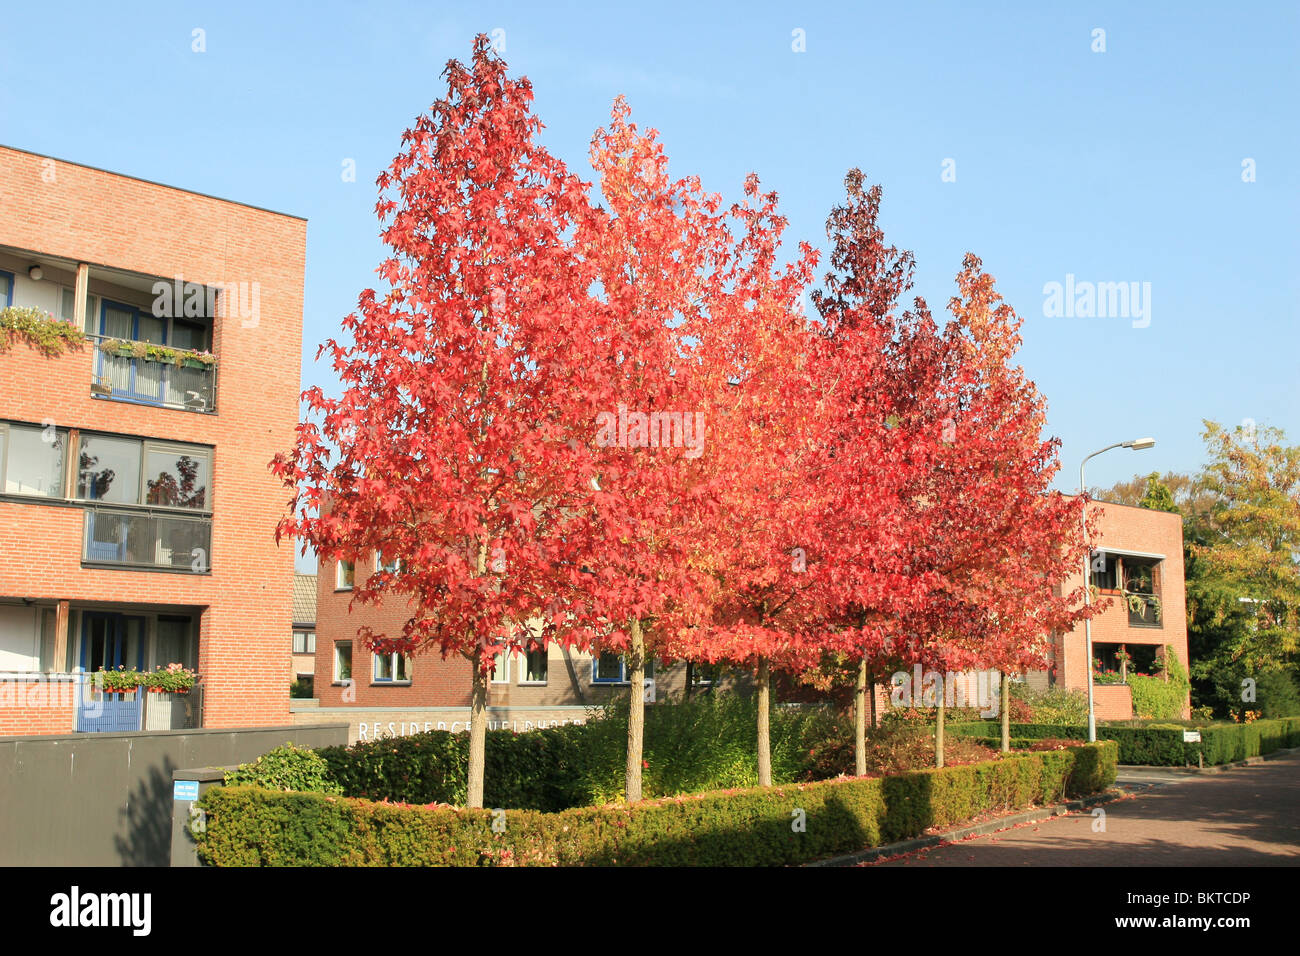 A Row Of American Sweetgum Trees In The Village Twello Stock Photo Alamy